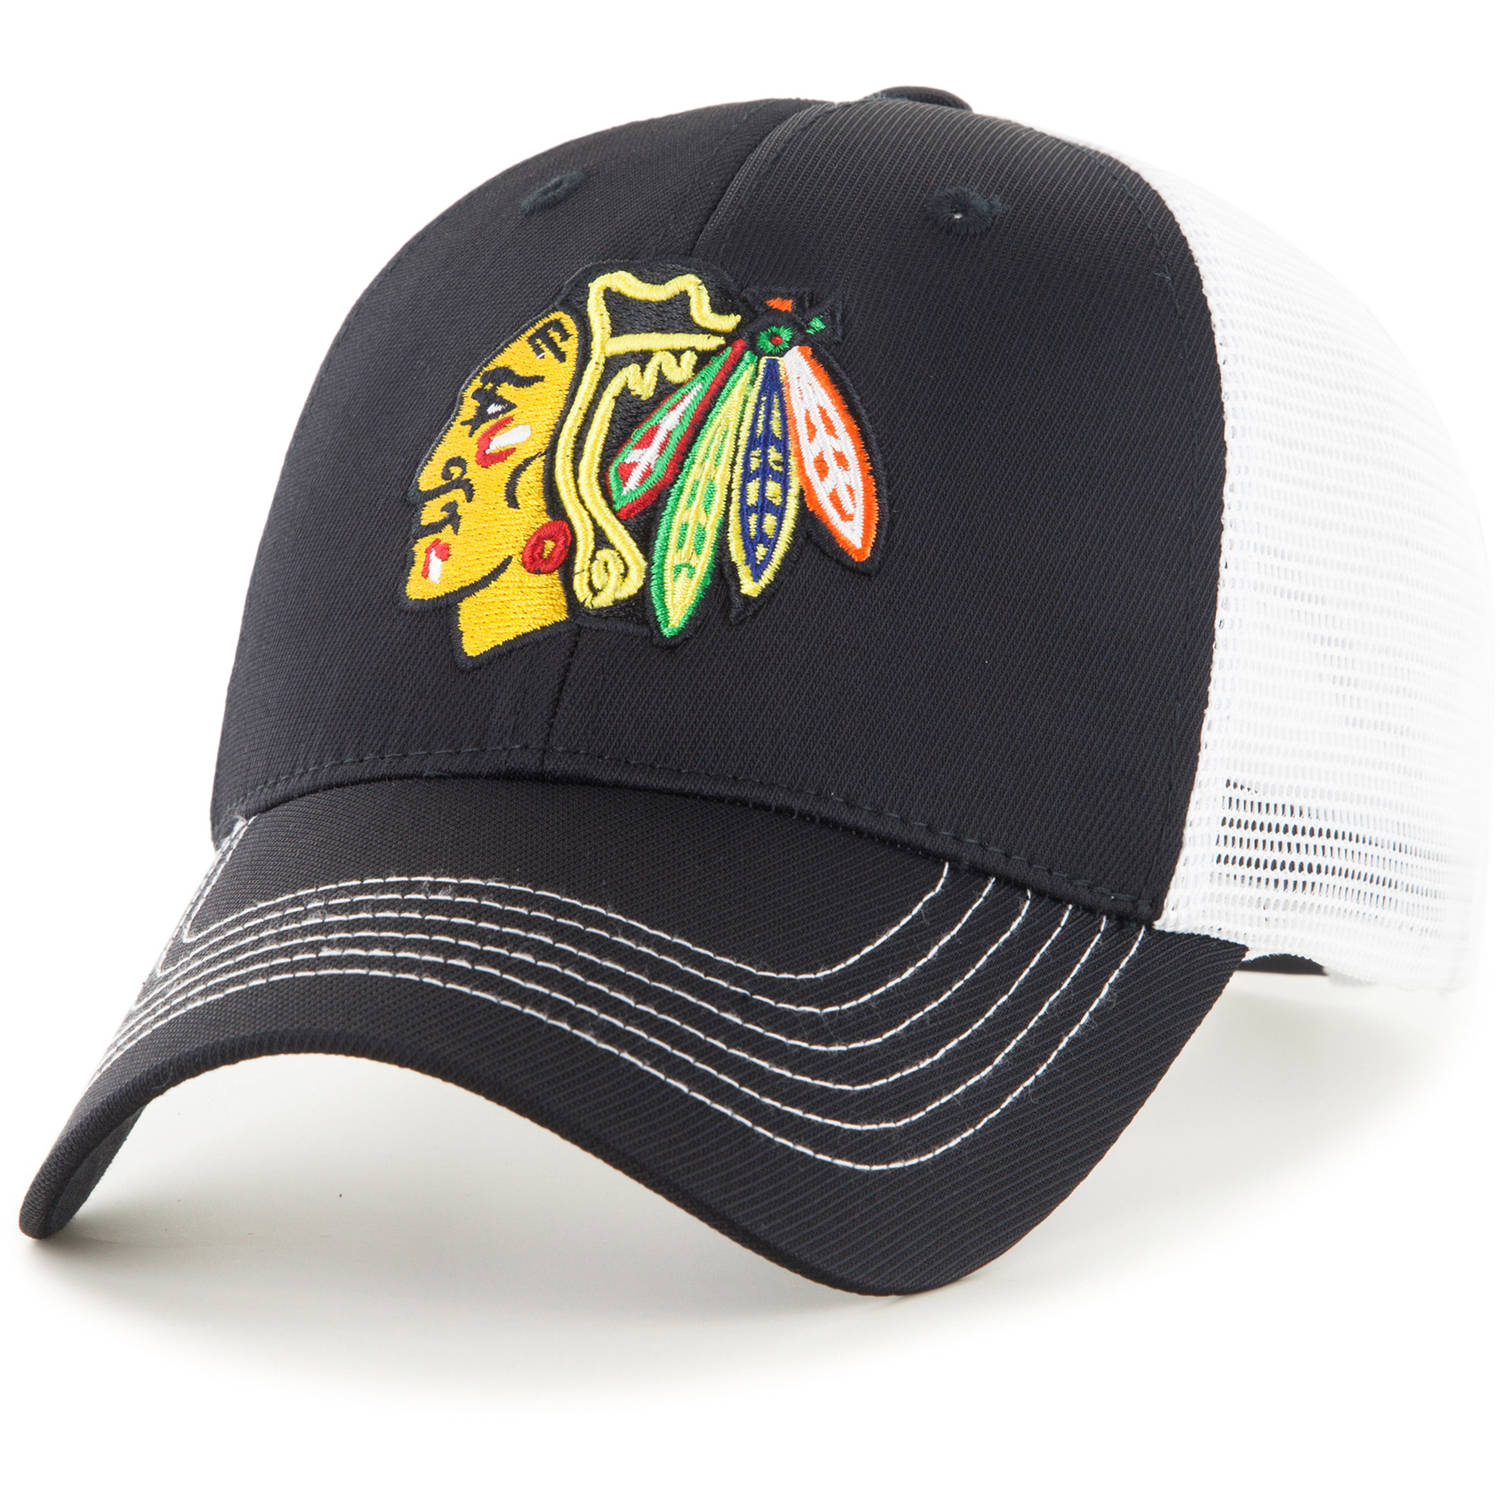 NHL Chicago Blackhawks Raycroft Cap / Hat by Fan Favorite